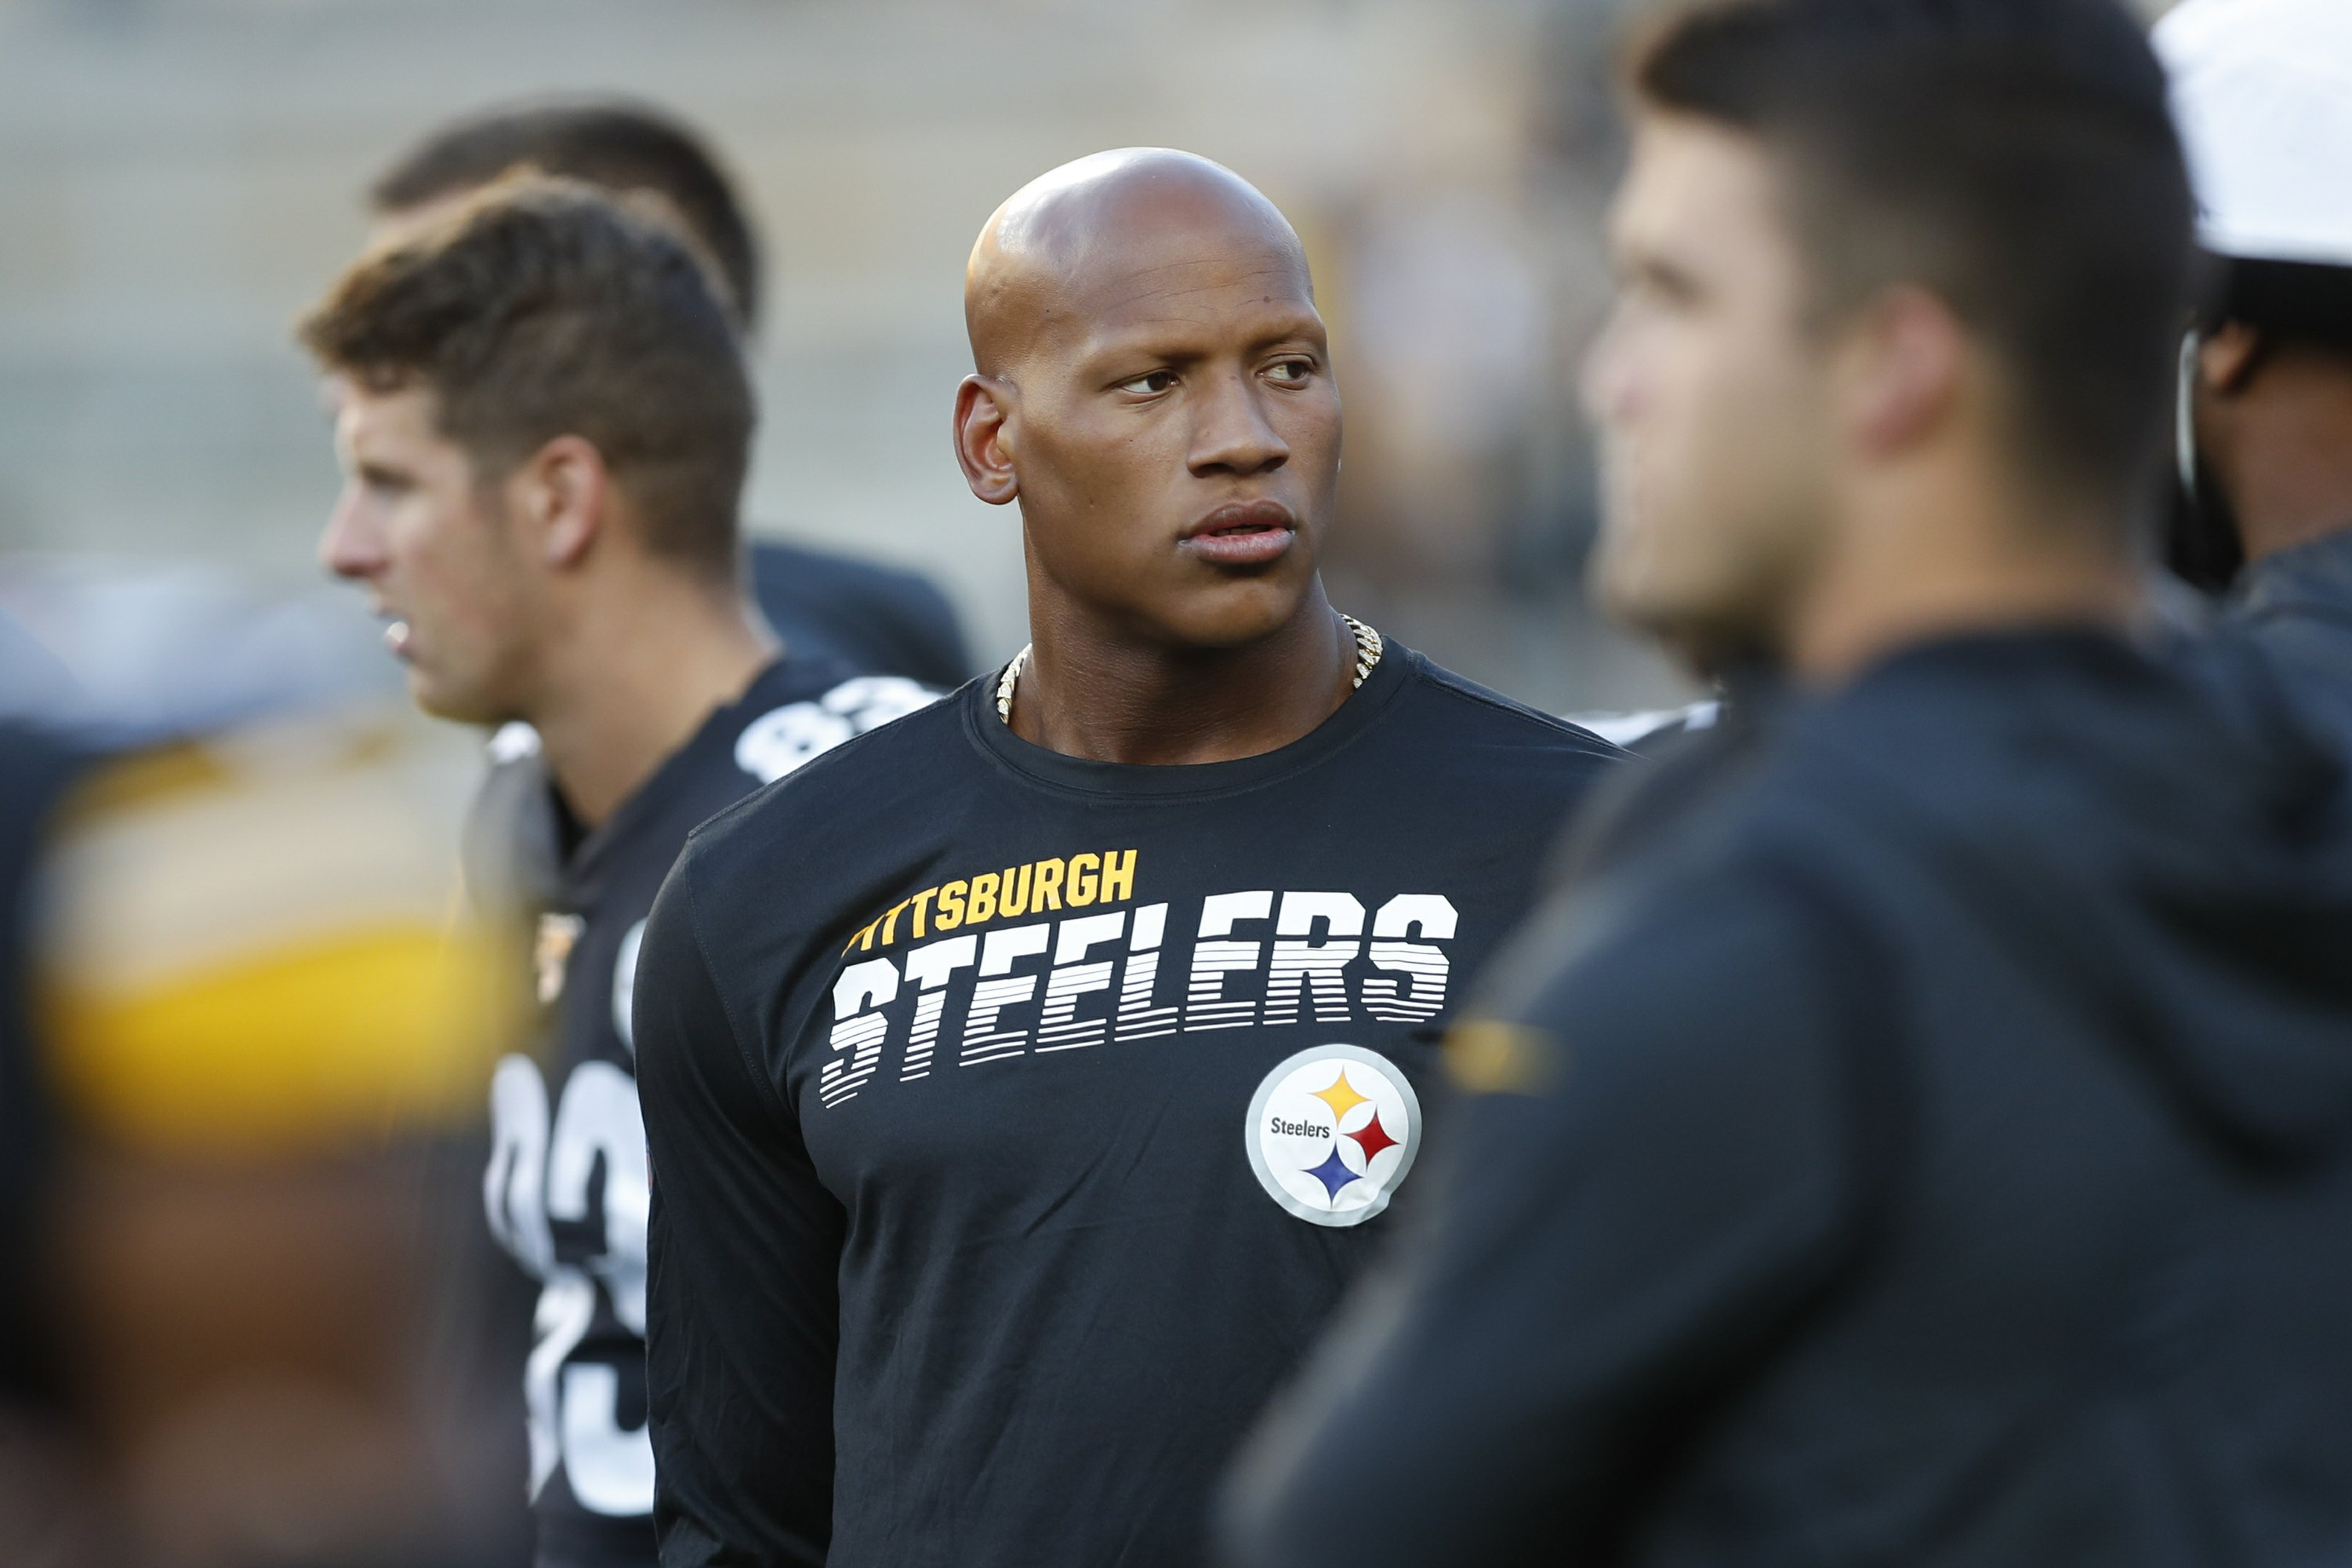 Steelers place LB Shazier on reserve/retired list